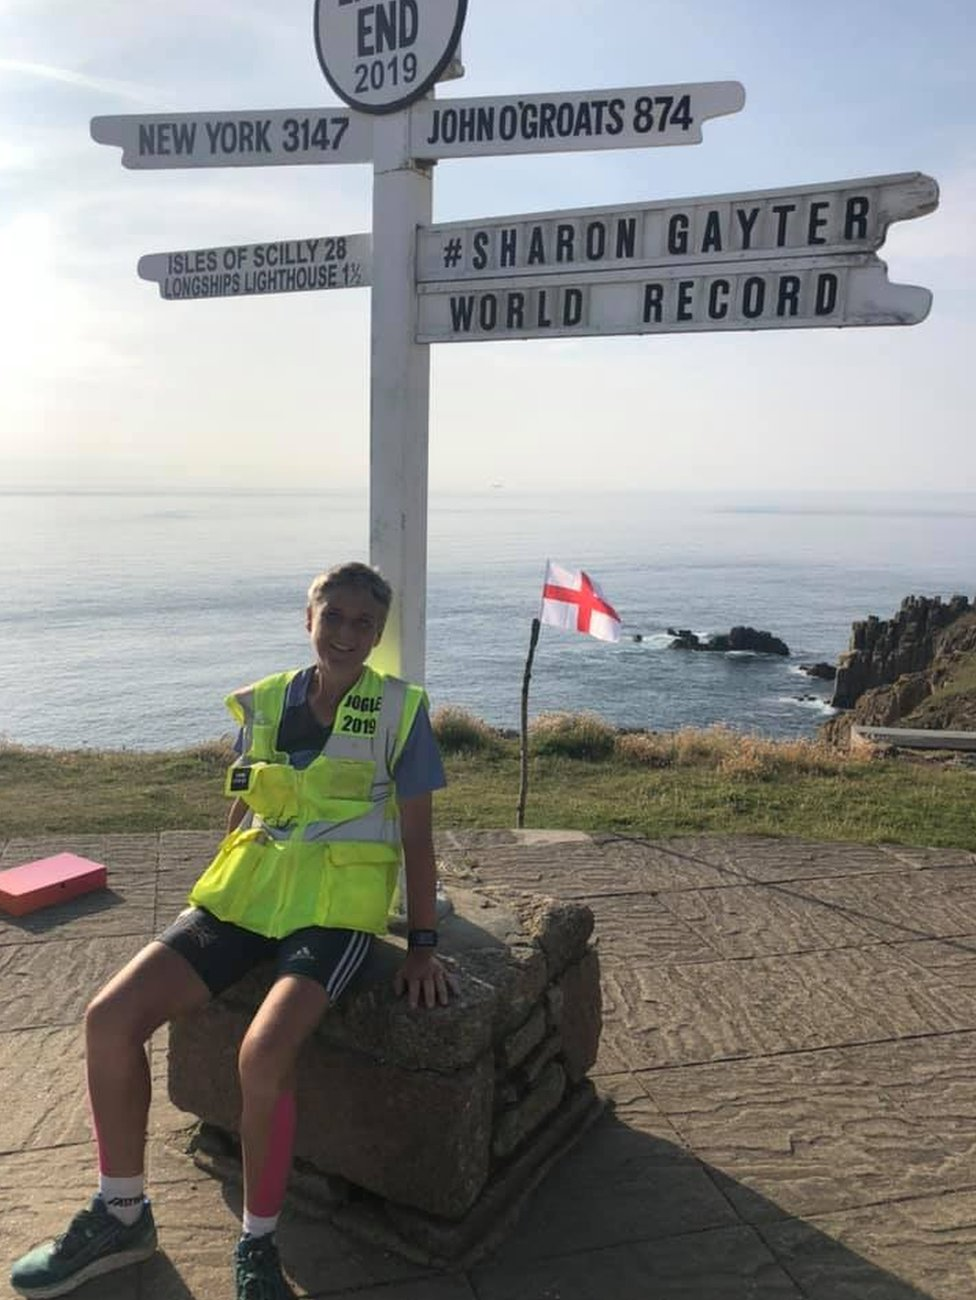 Sharon Gayter under the Land's End location sign